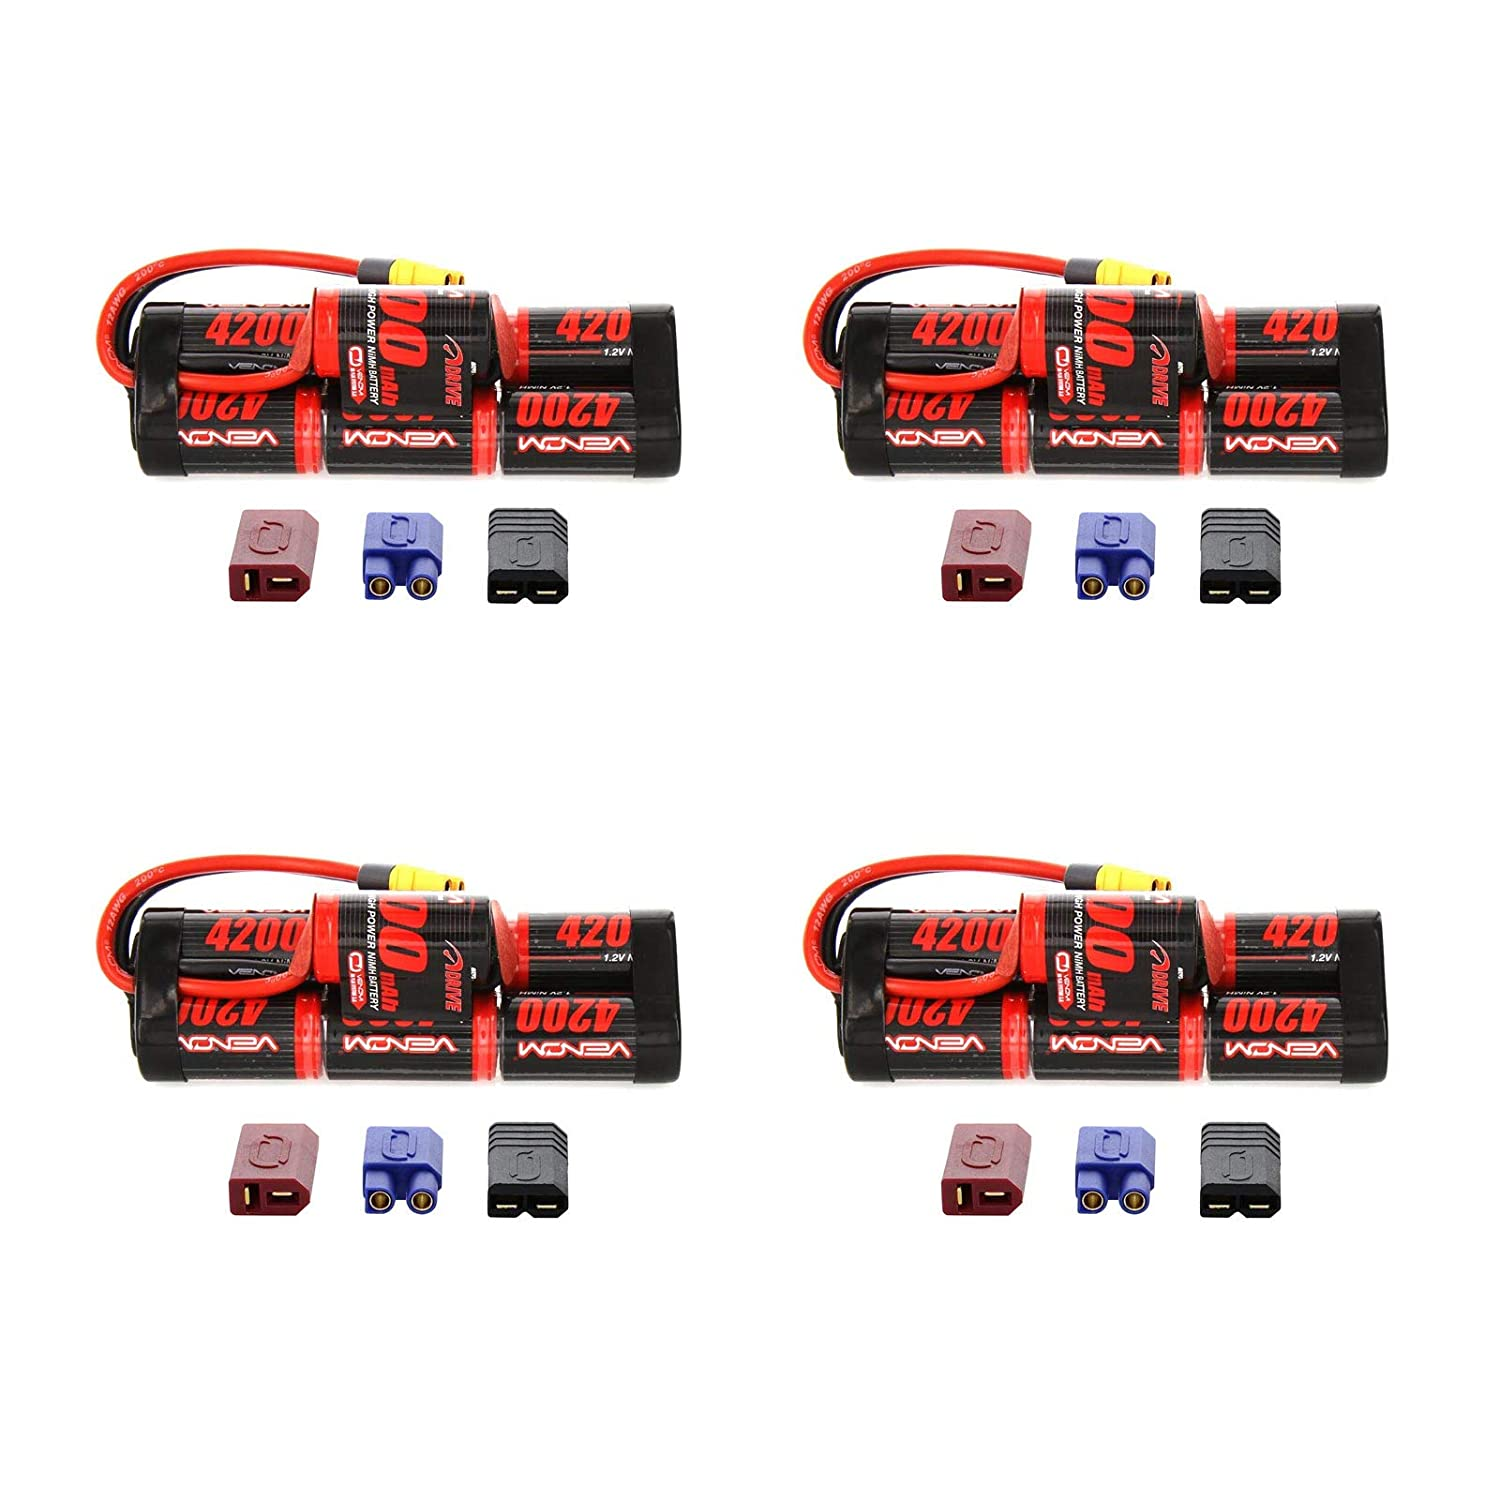 Venom 8.4v 4200mAh 7Cell Hump NiMH Battery with Universal Plug System x4 Packs